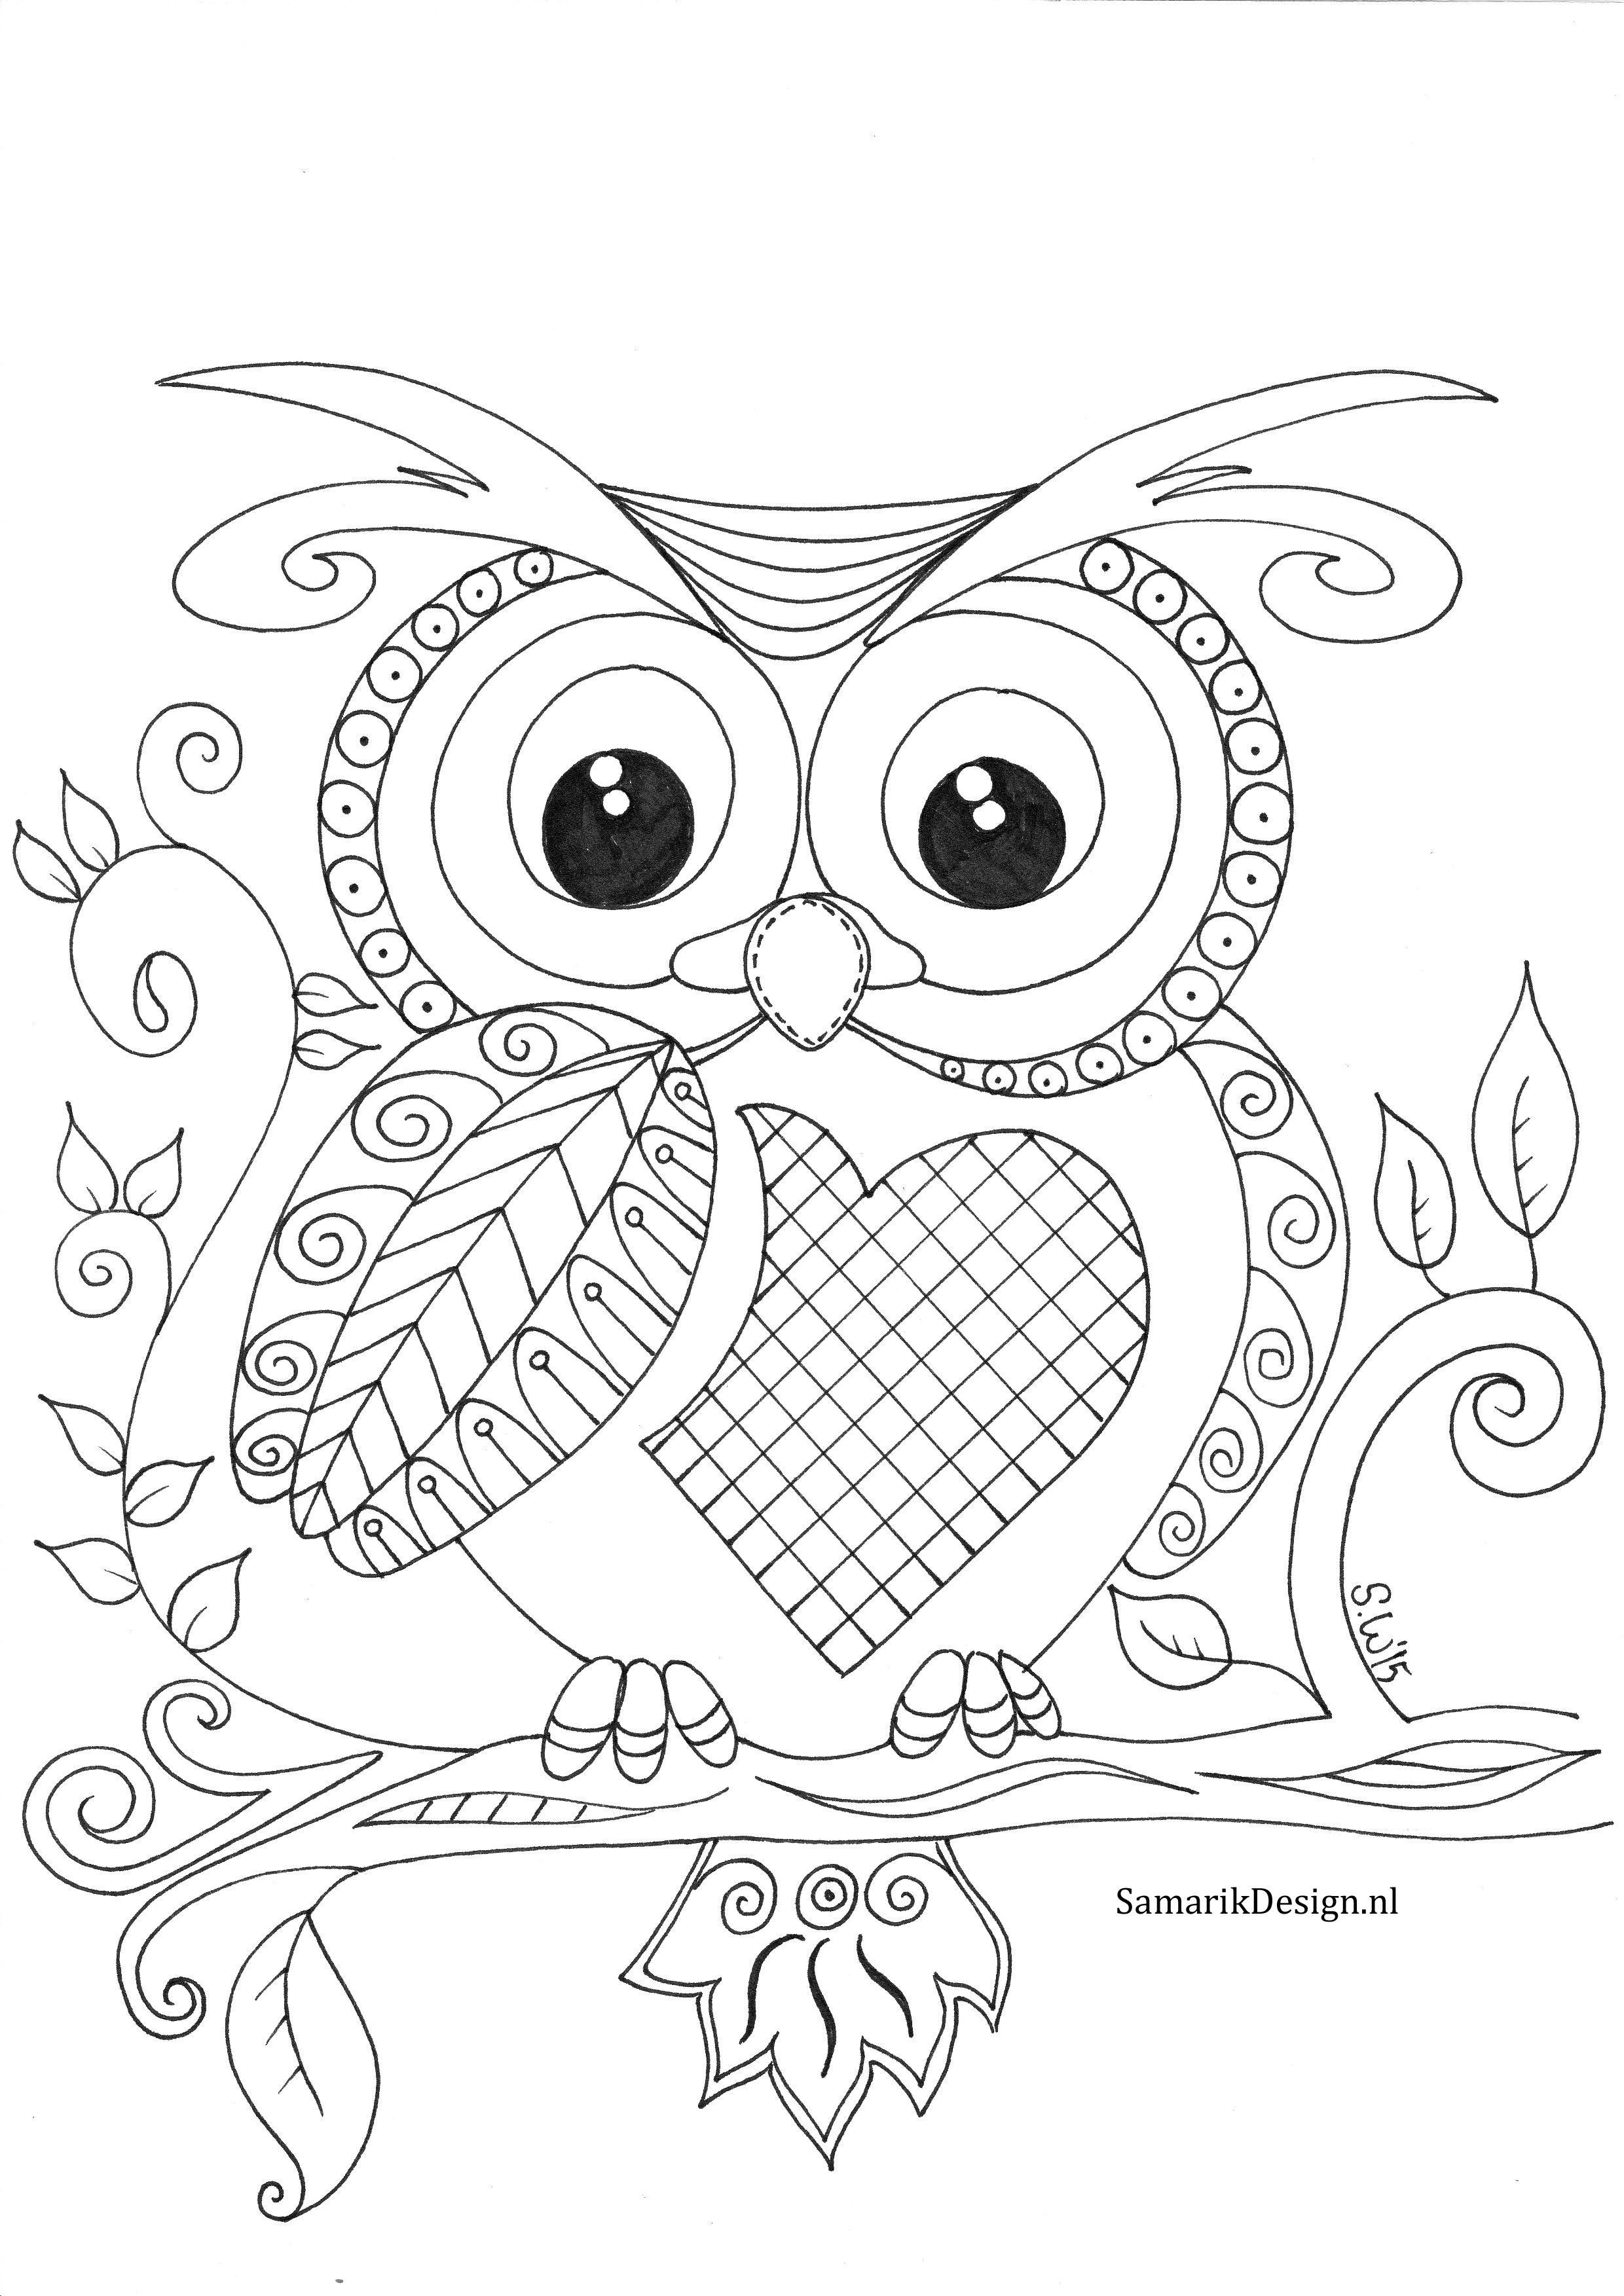 finished owl coloring pages realistic barn owl drawing at getdrawings free download coloring owl pages finished